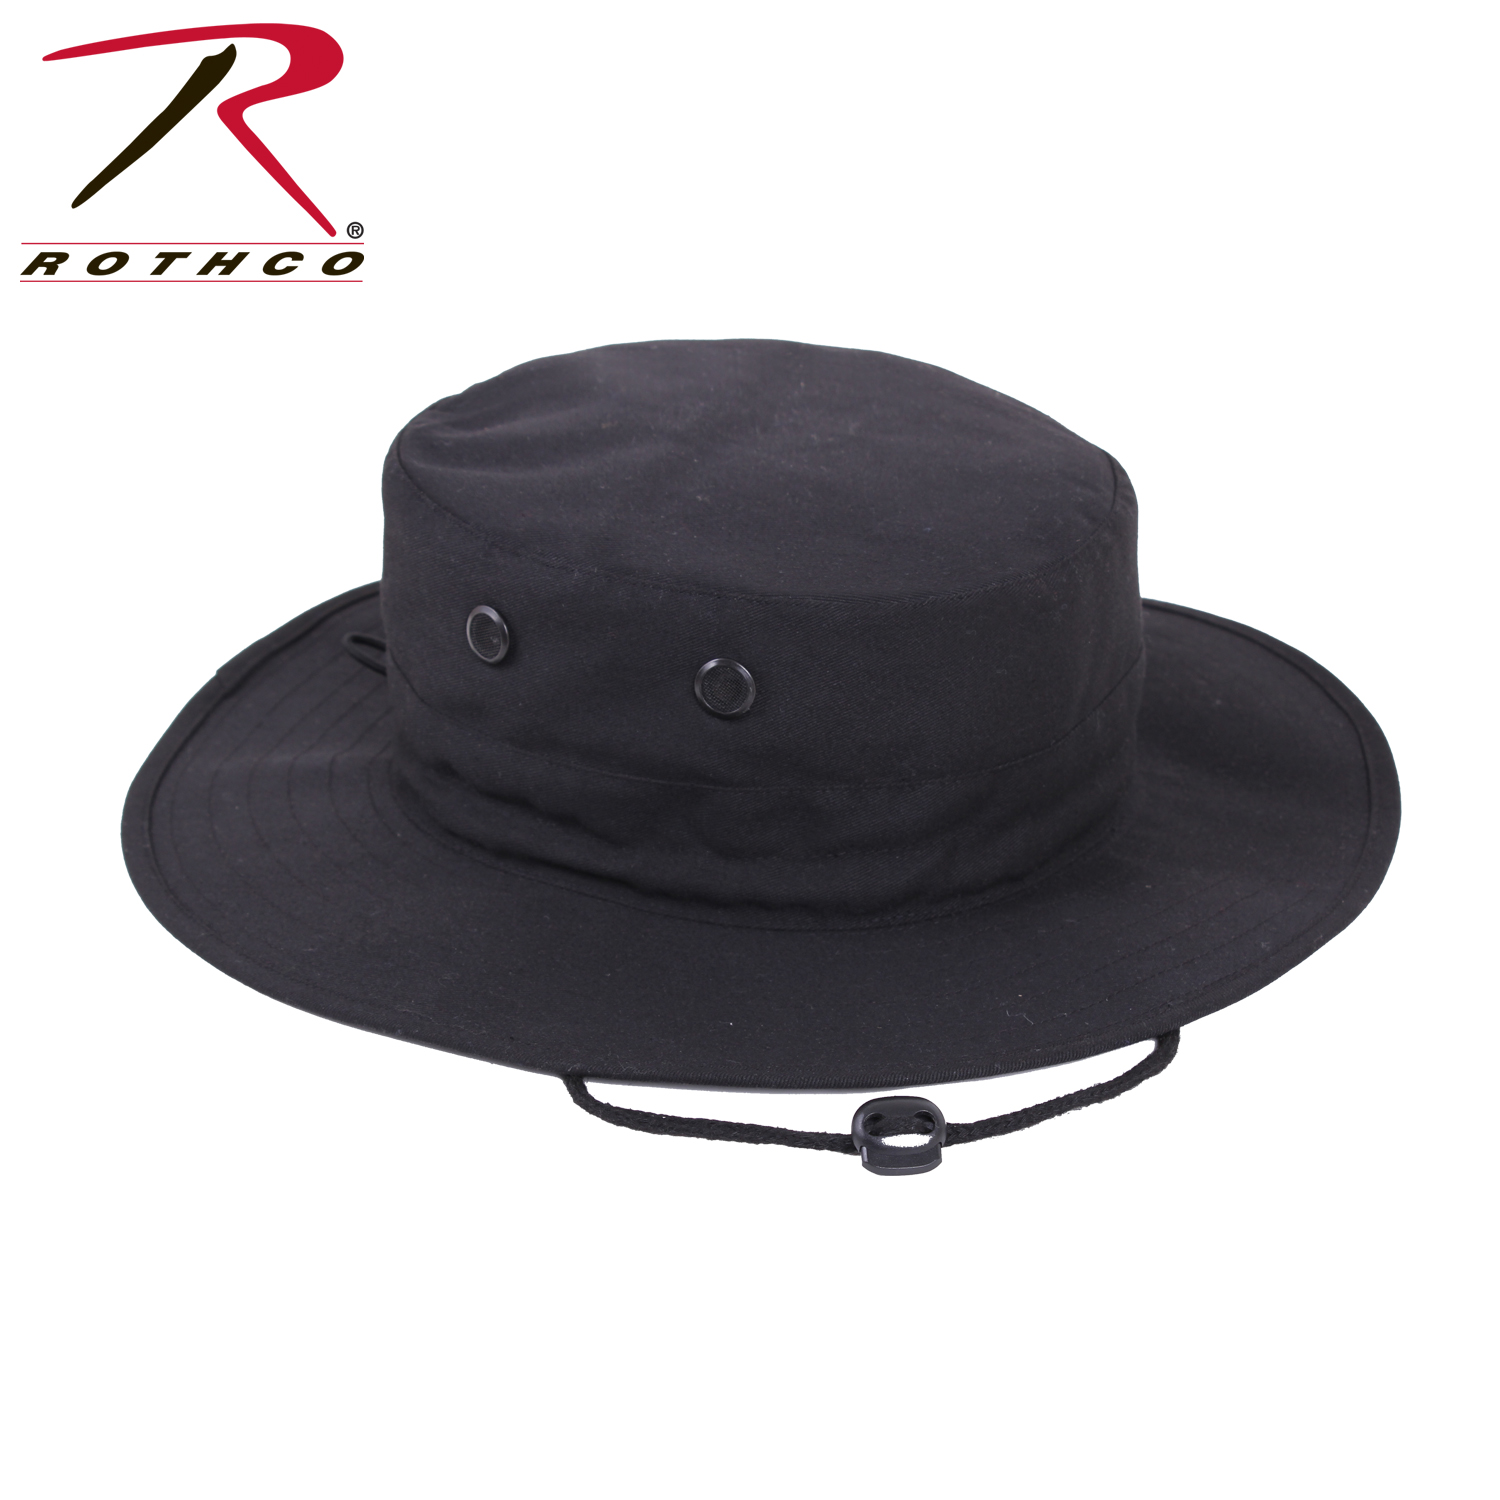 Rothco Adjustable Boonie Hat 57ef4bf55c